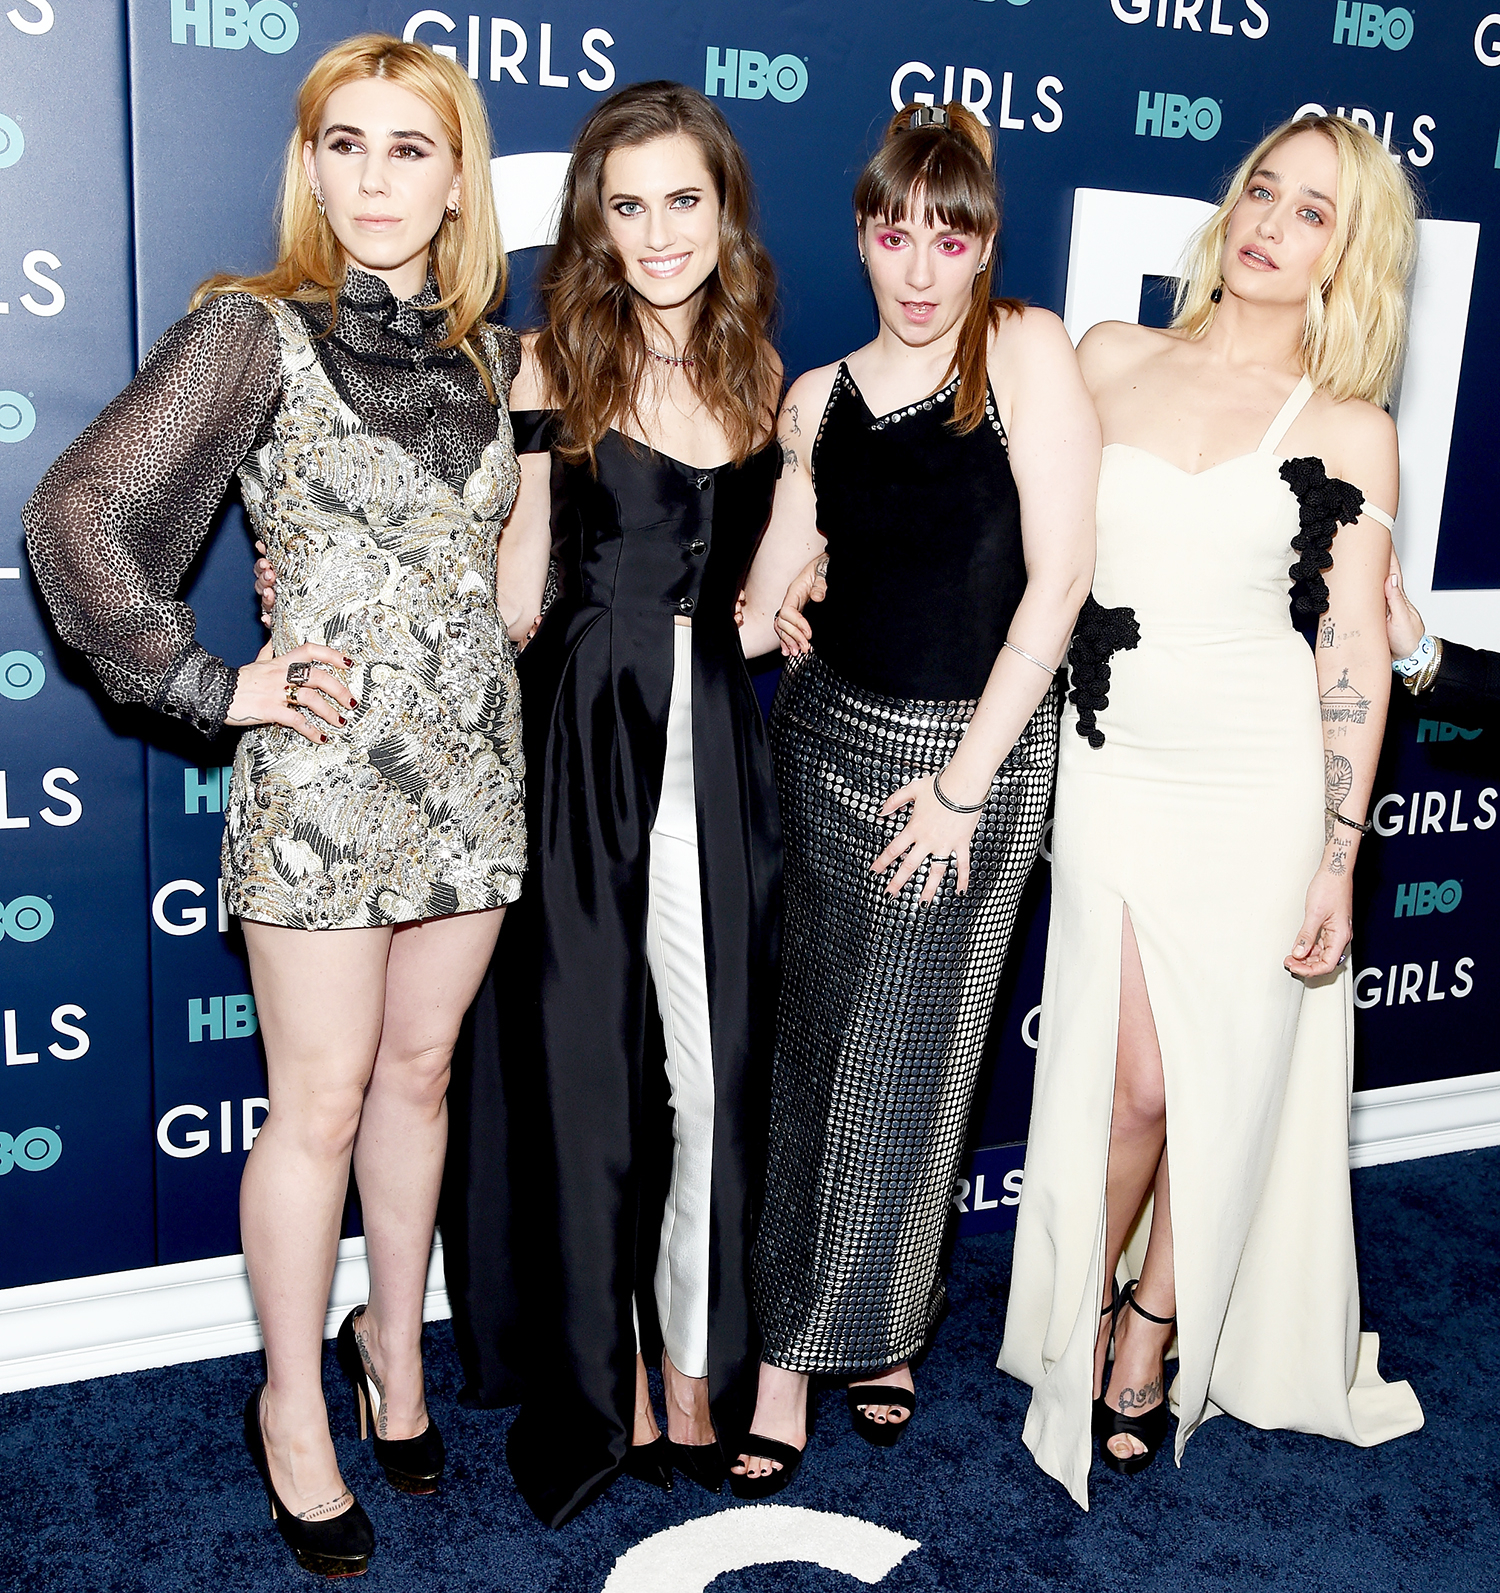 Zosia Mamet, Allison Williams, Lena Dunham and Jemima Kirke attend The New York Premiere Of The Sixth & Final Season Of